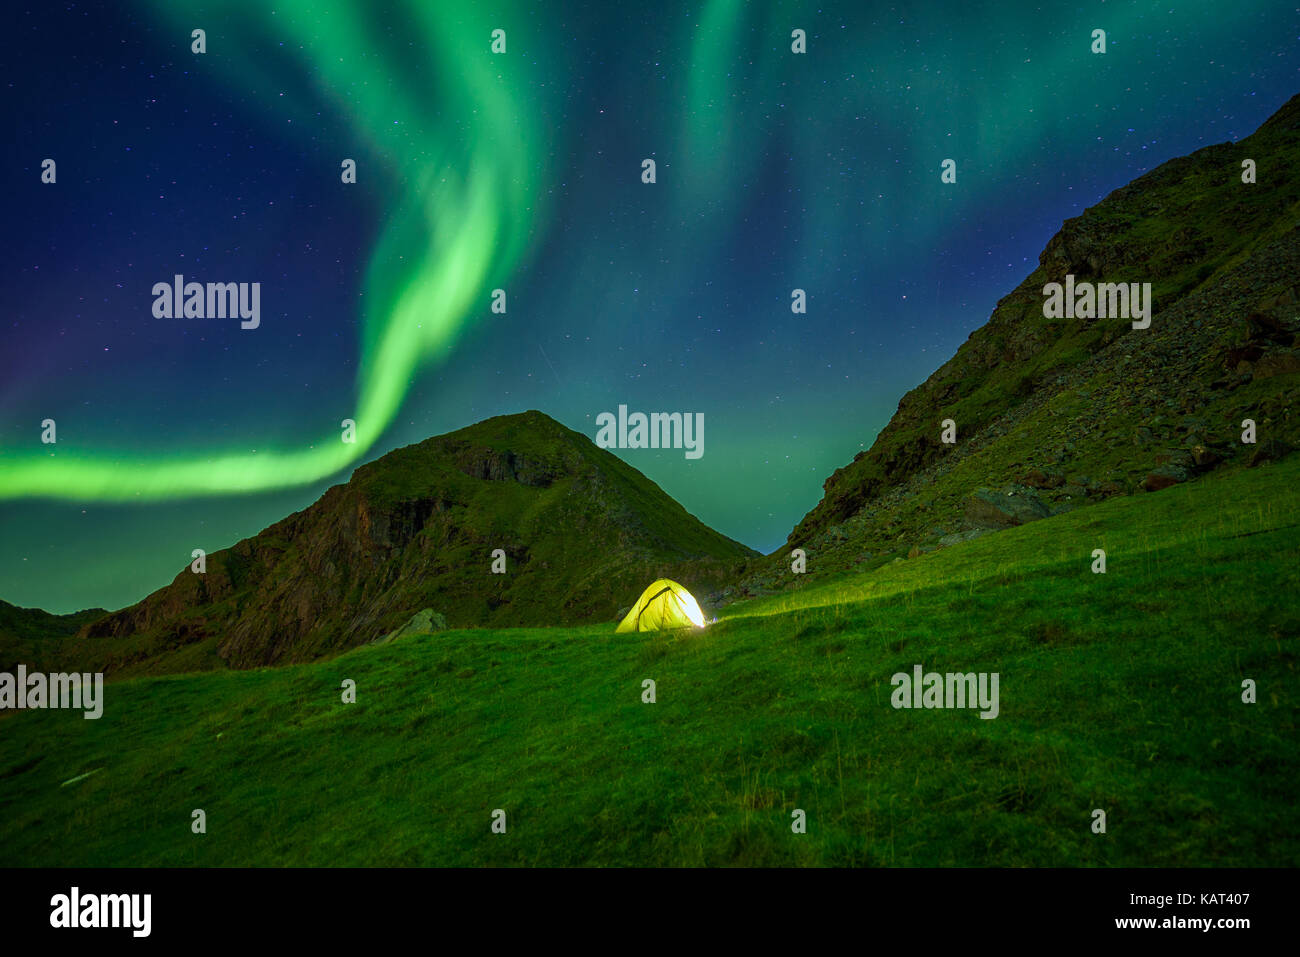 Illuminated tent in the Lofoten islands in Norway with the northern lights overhead (Aurora Borealis) - Stock Image